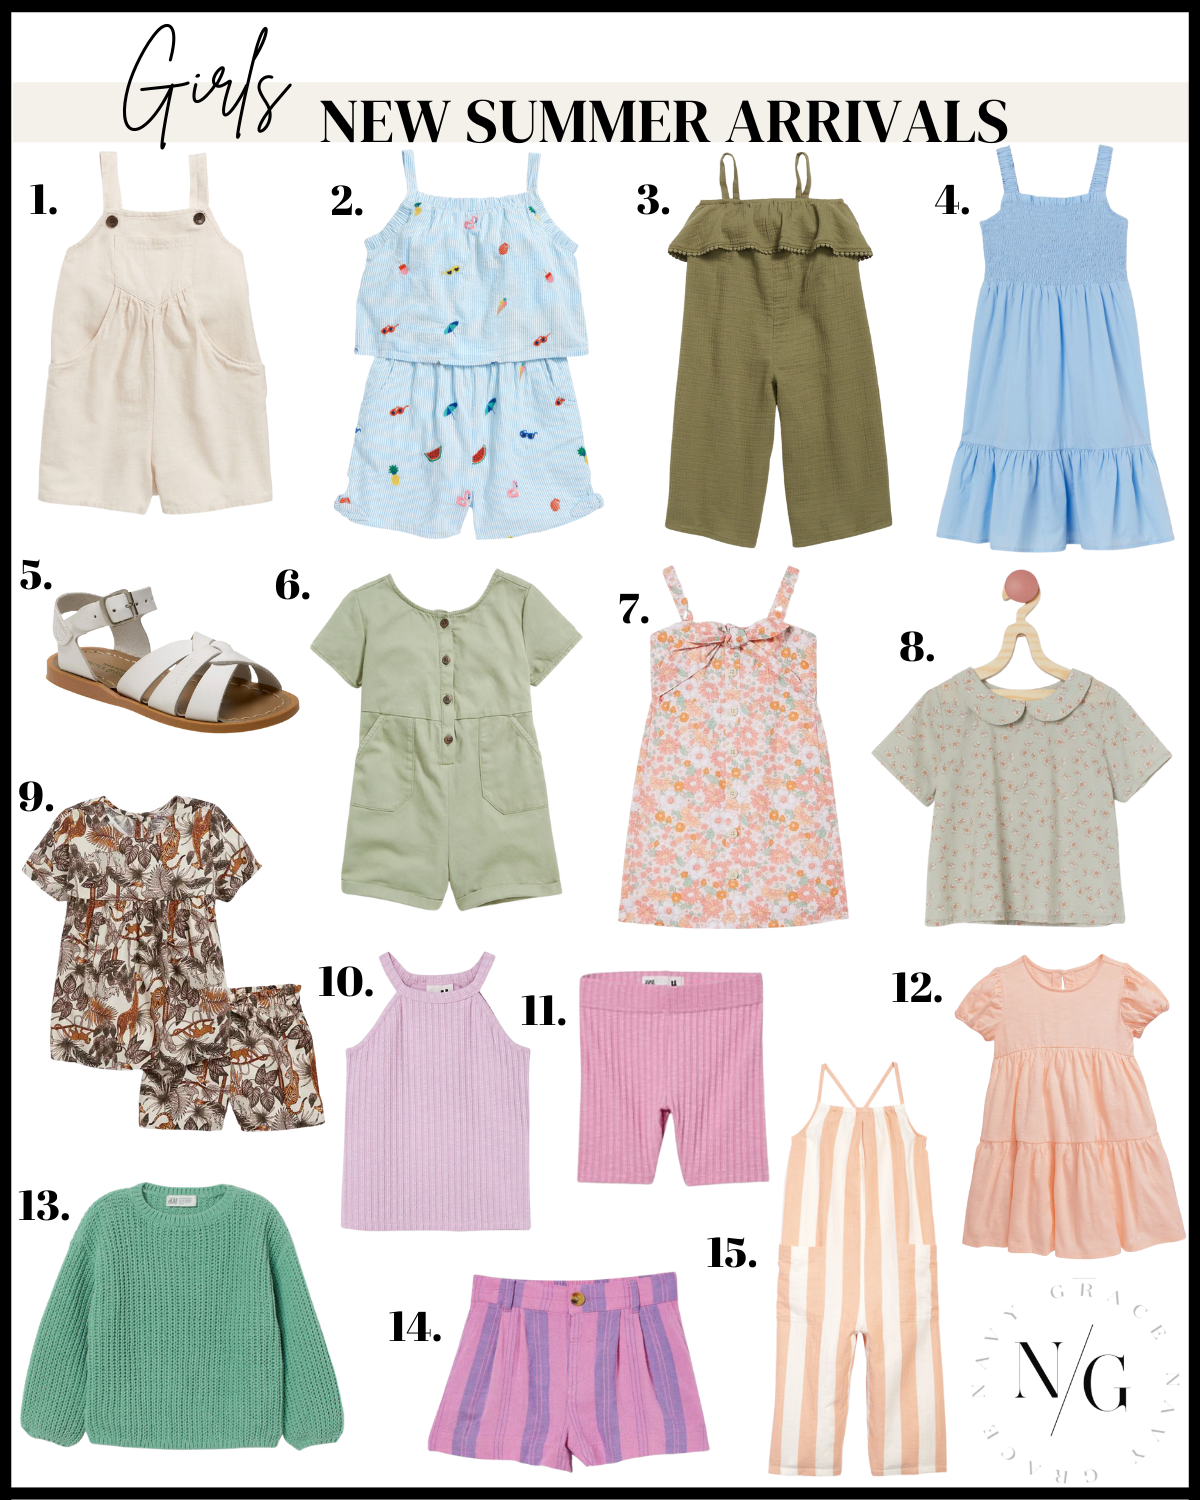 collage of Kids new summer arrivals for girls